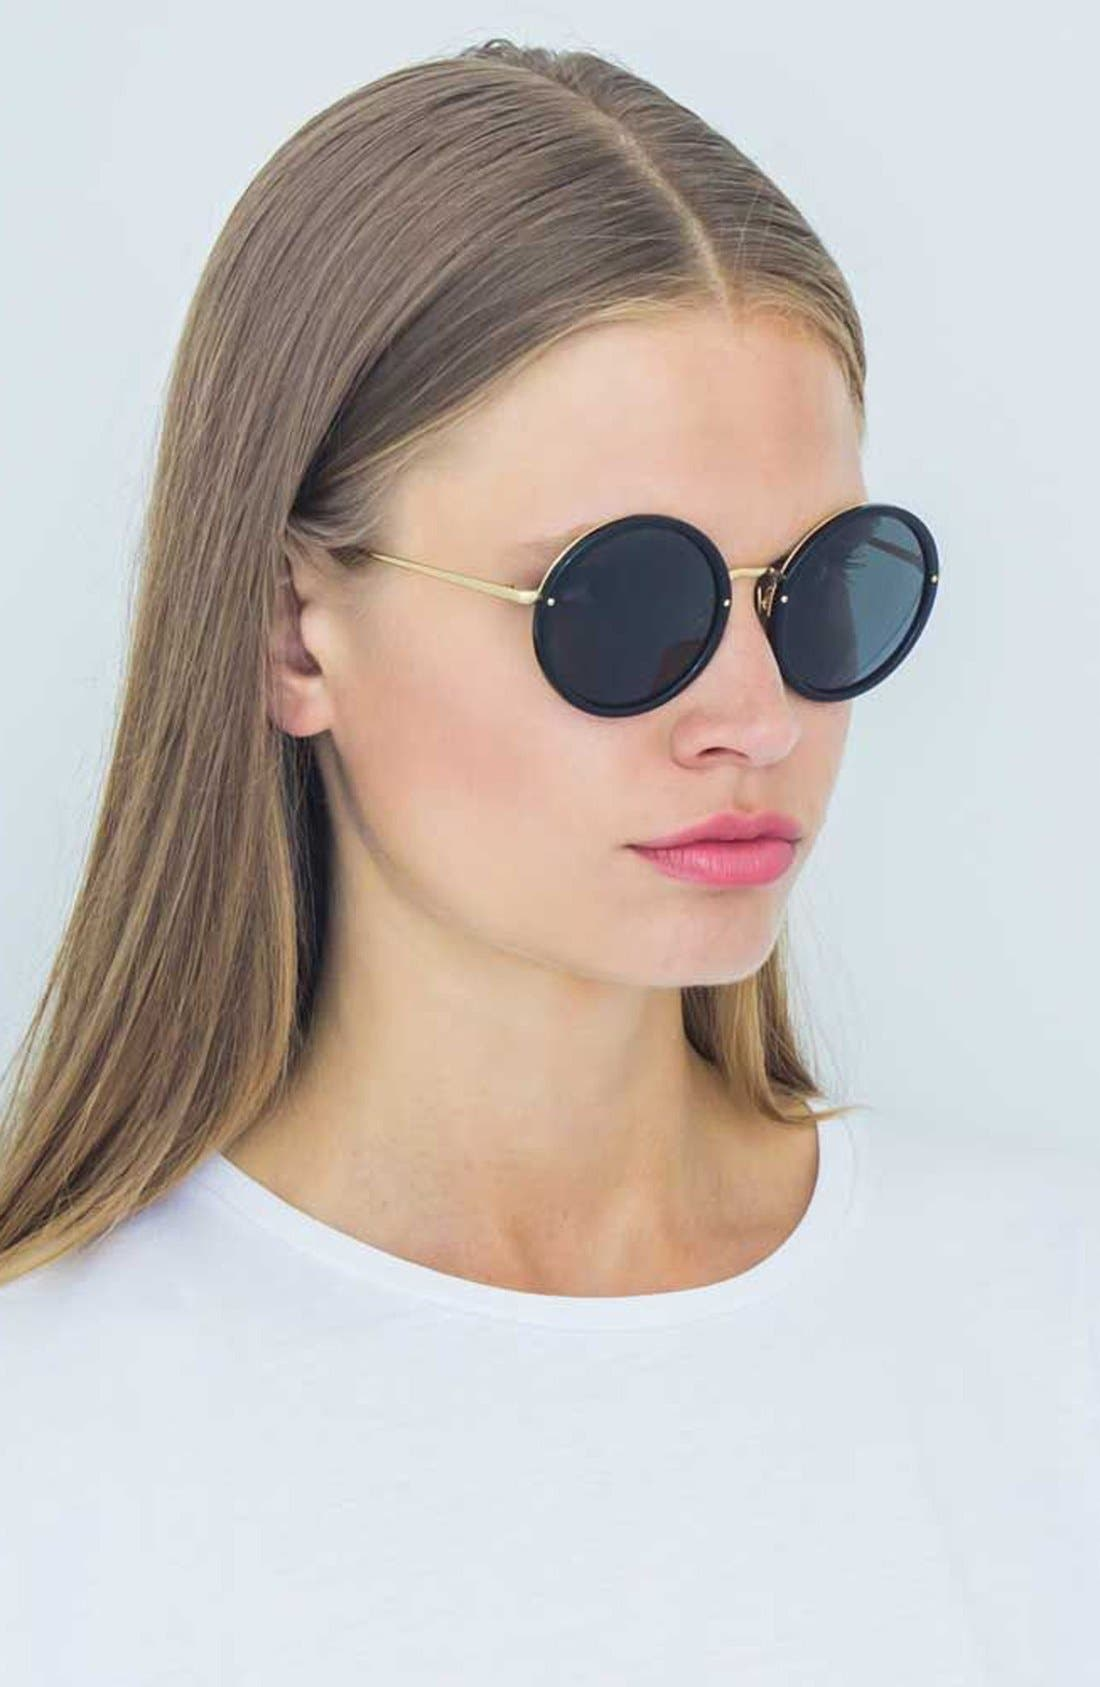 51mm Round 24 Karat Gold Trim Sunglasses,                             Alternate thumbnail 2, color,